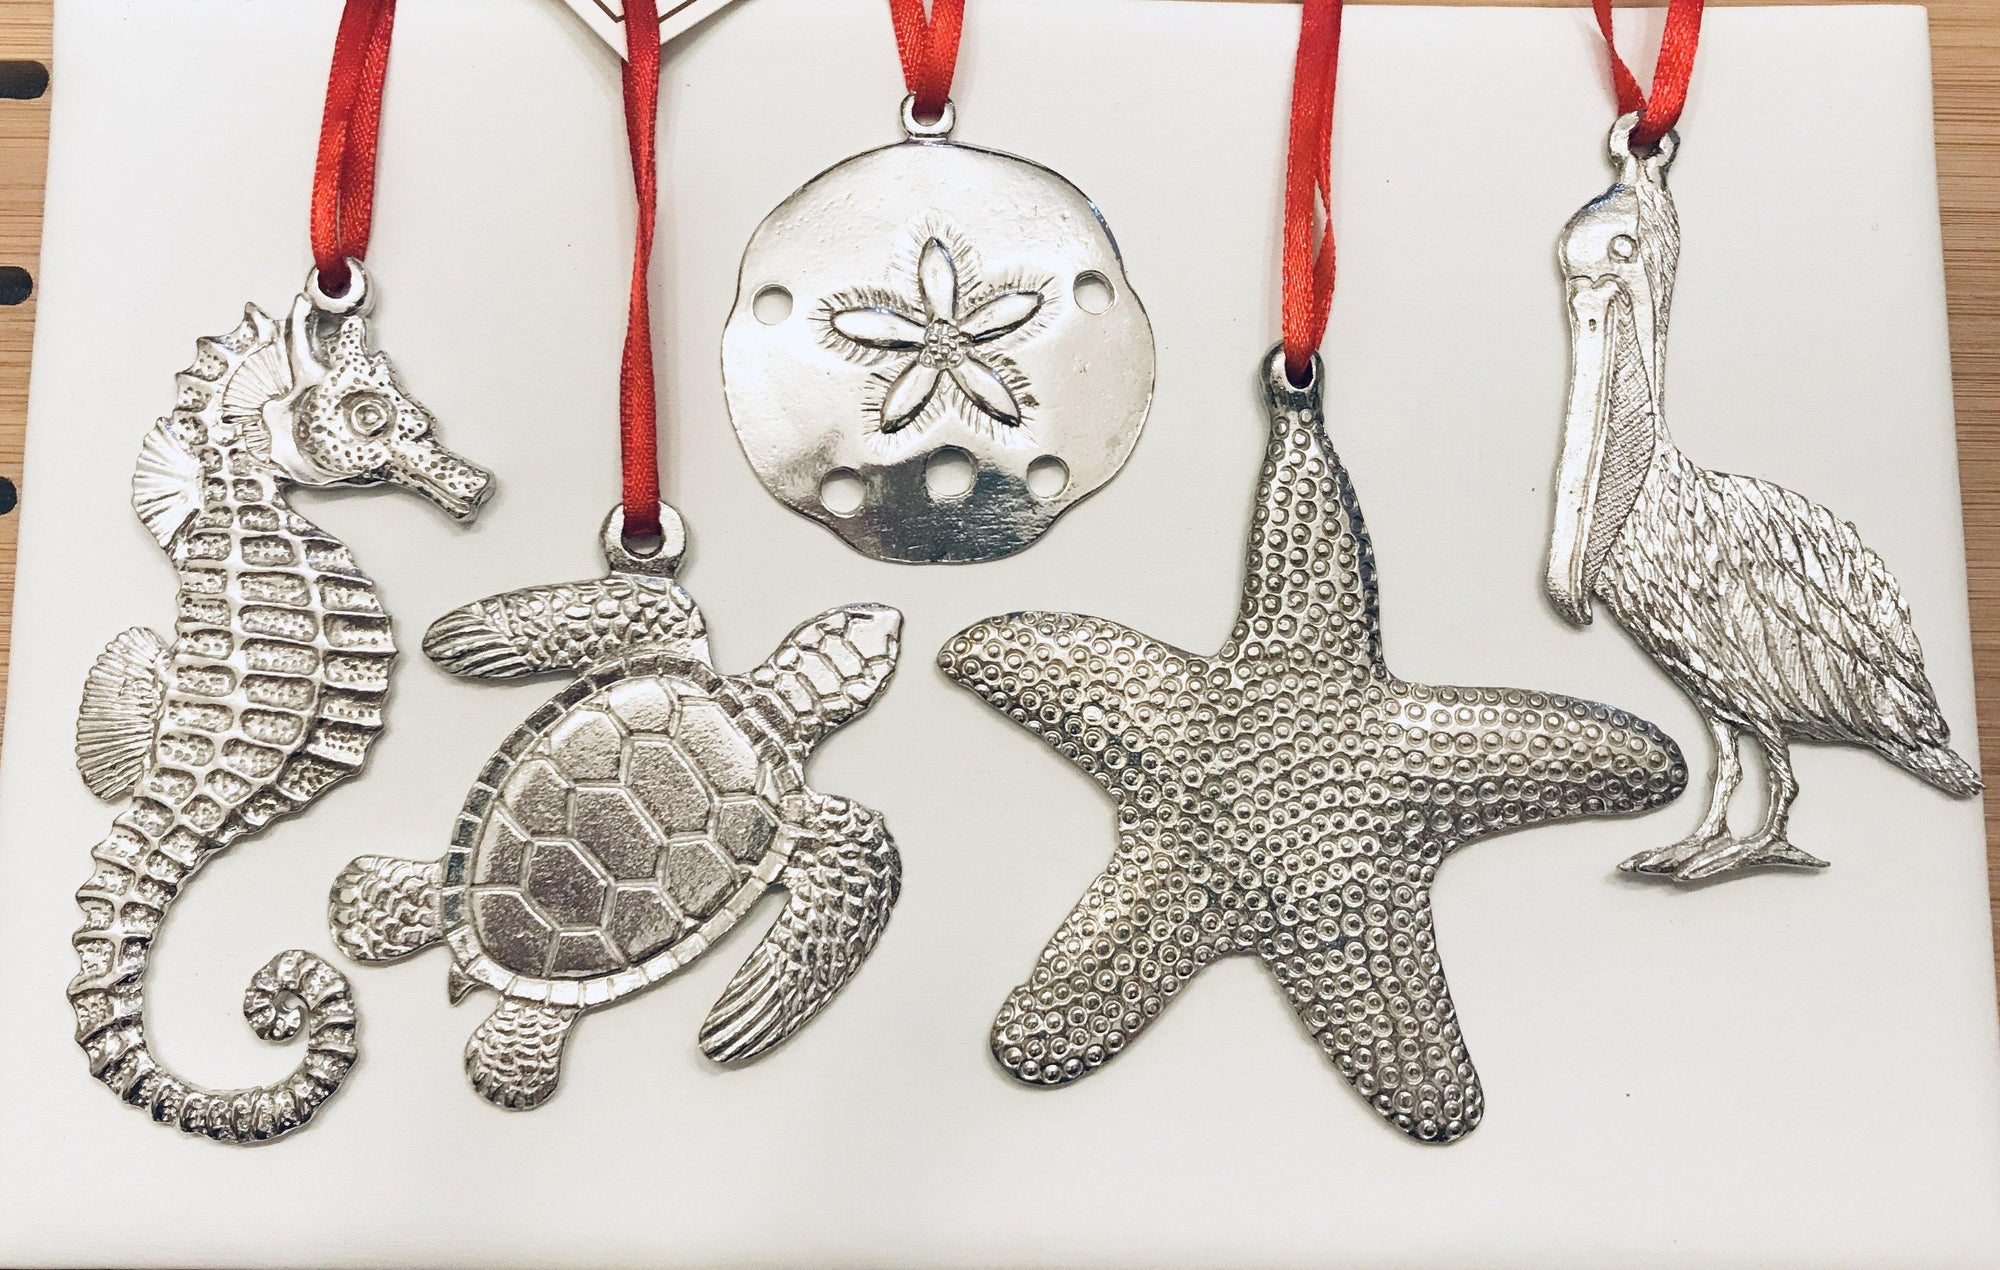 Beachy Ocean Pewter Ornament Set - House of Morgan Pewter